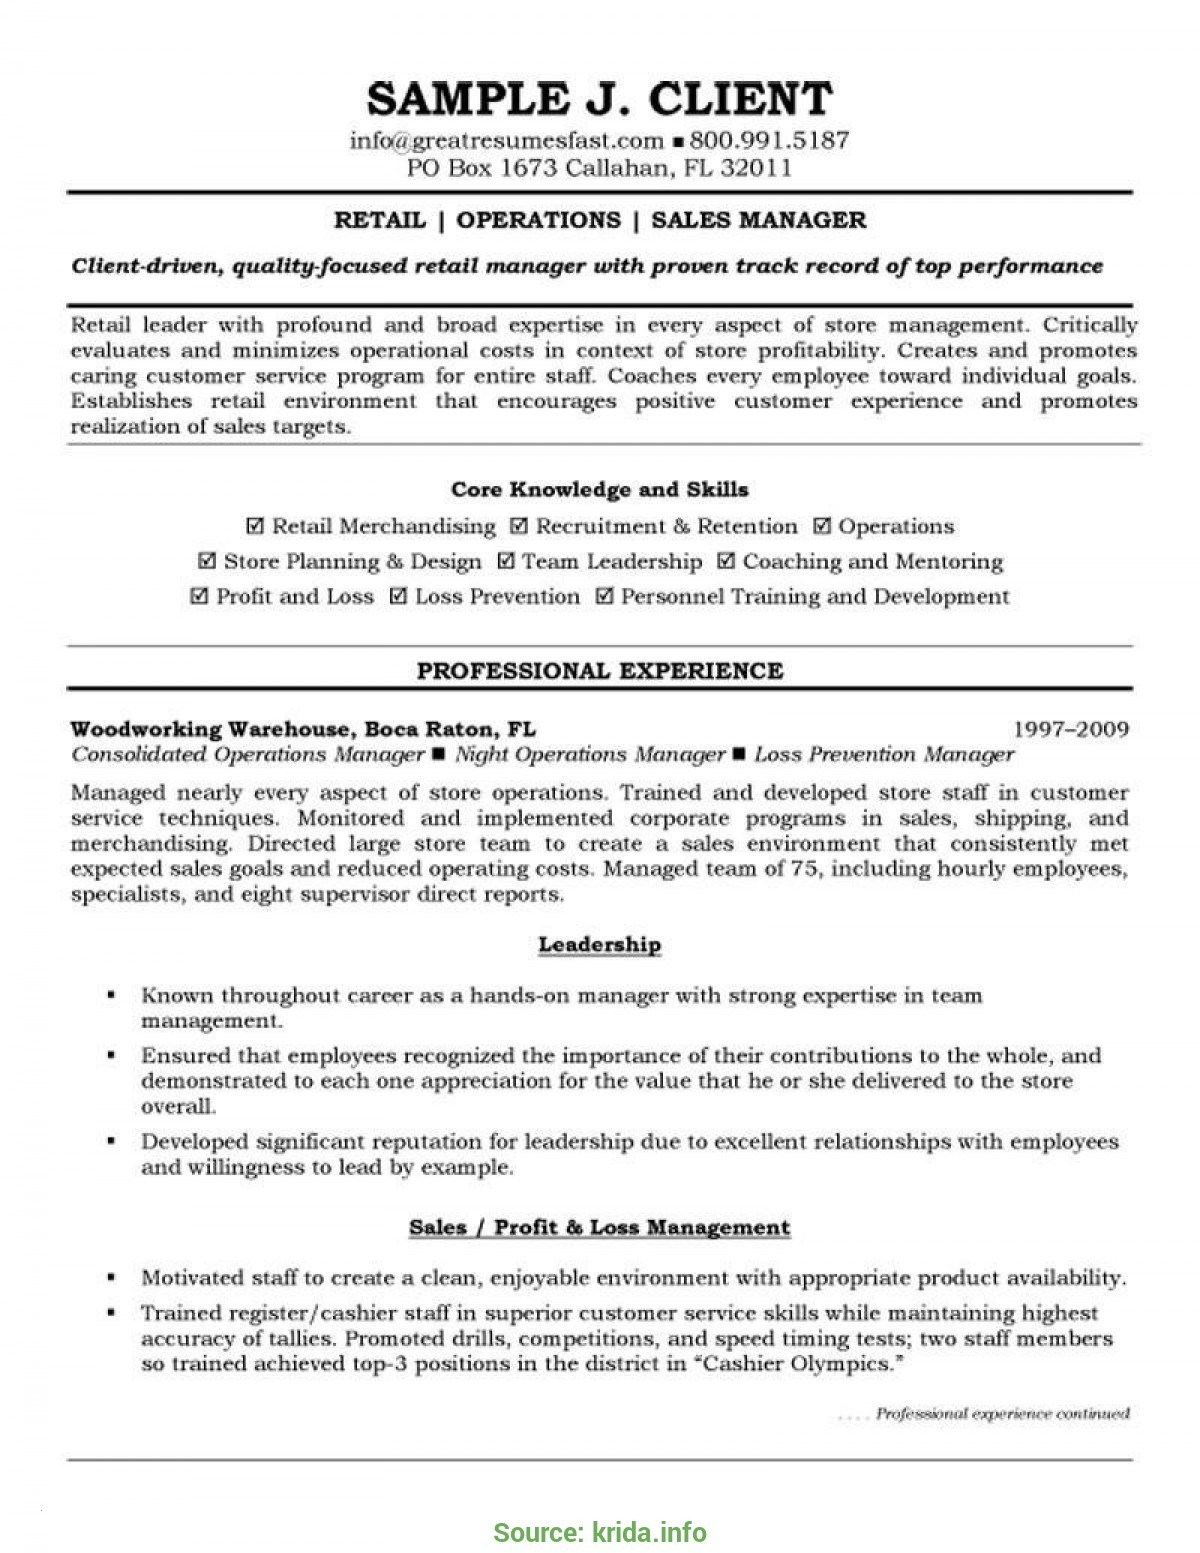 Retail Manager Resume Examples - Retail Store Manager Resume Example Best Retail Management Resume